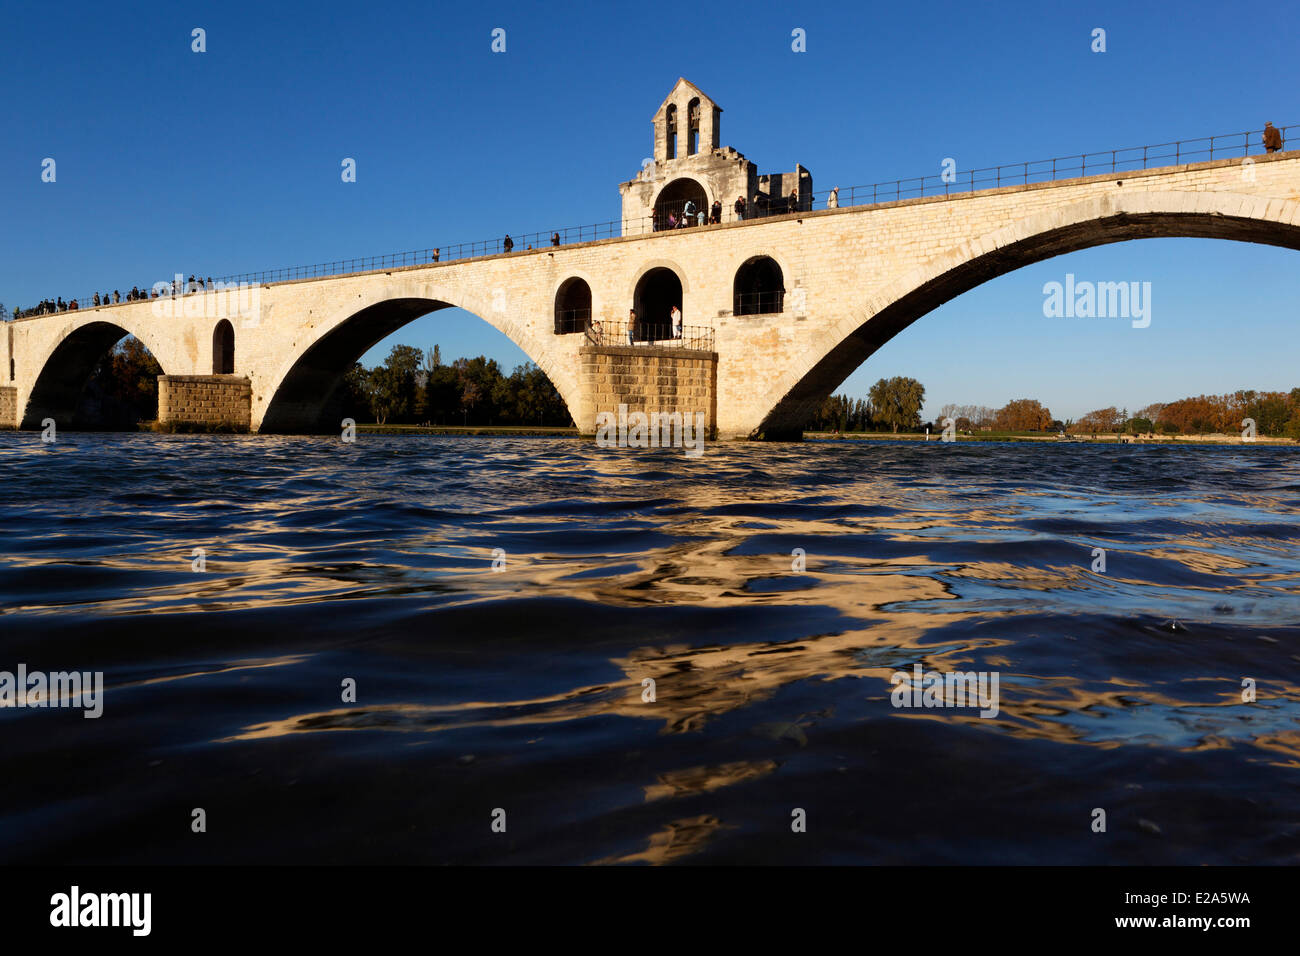 France, Vaucluse, Avignon, bridge of Saint Benezet of the 12th century, listed as World Heritage by UNESCO , and - Stock Image